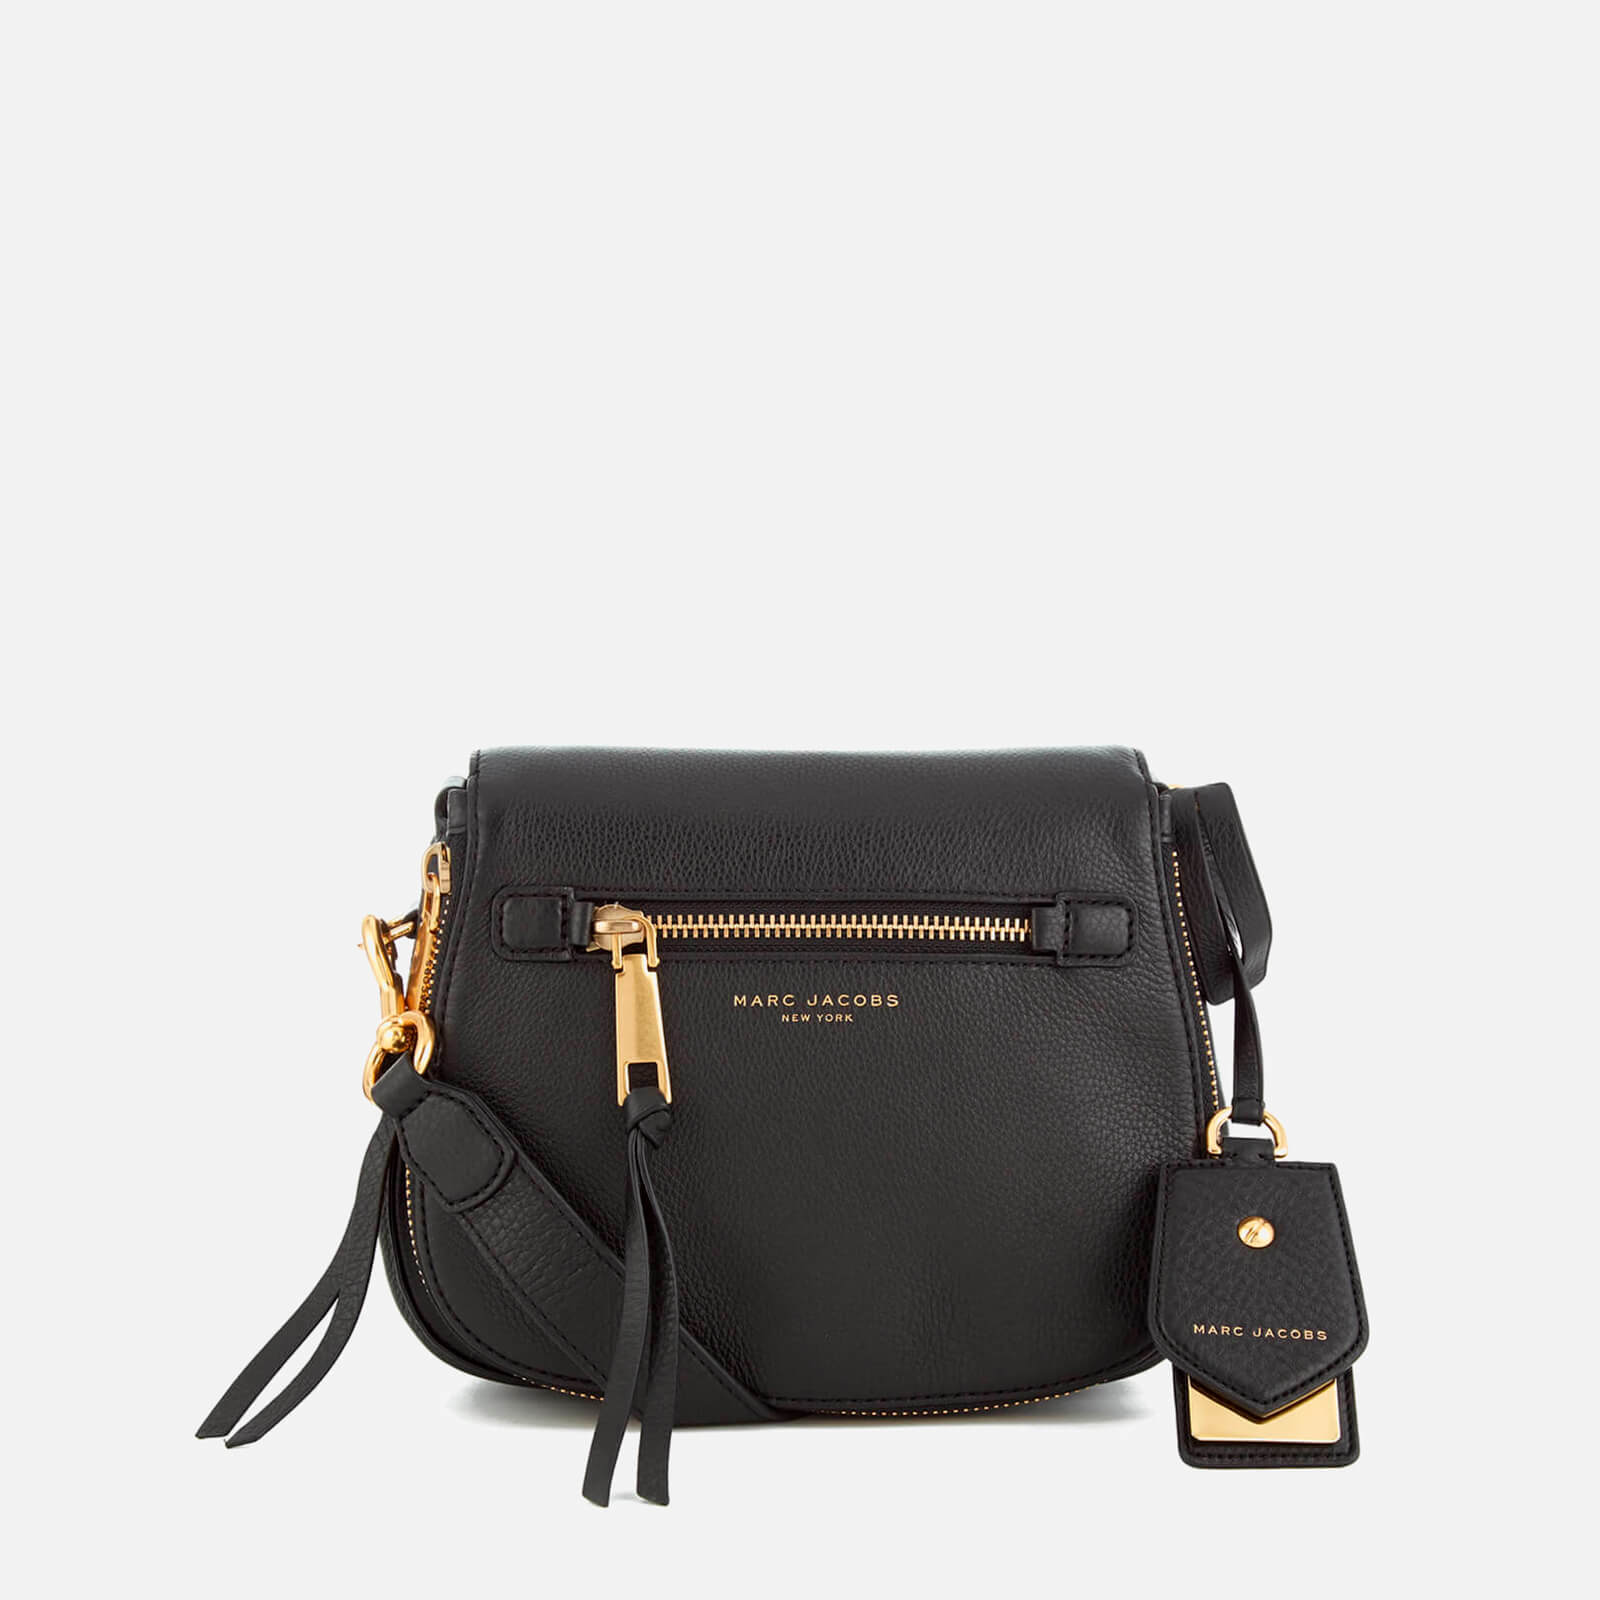 91d634343eda5 Marc Jacobs Women s Recruit Small Saddle Bag - Black - Free UK Delivery  over £50